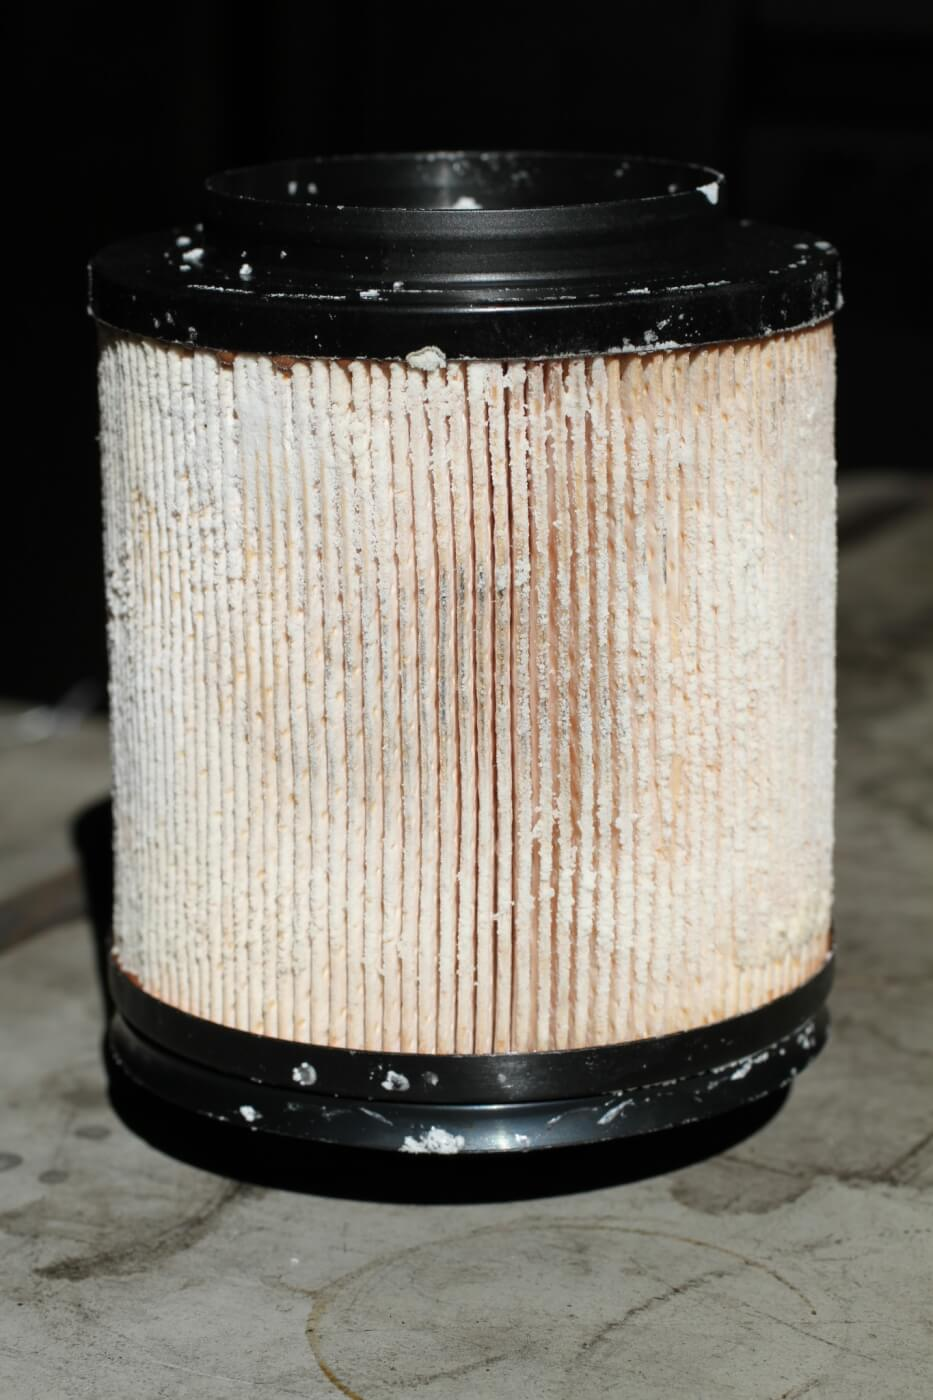 10. Here you see a fuel filter that's encrusted with urea crystals from DEF. This is a sure sign of DEF contamination in the fuel.